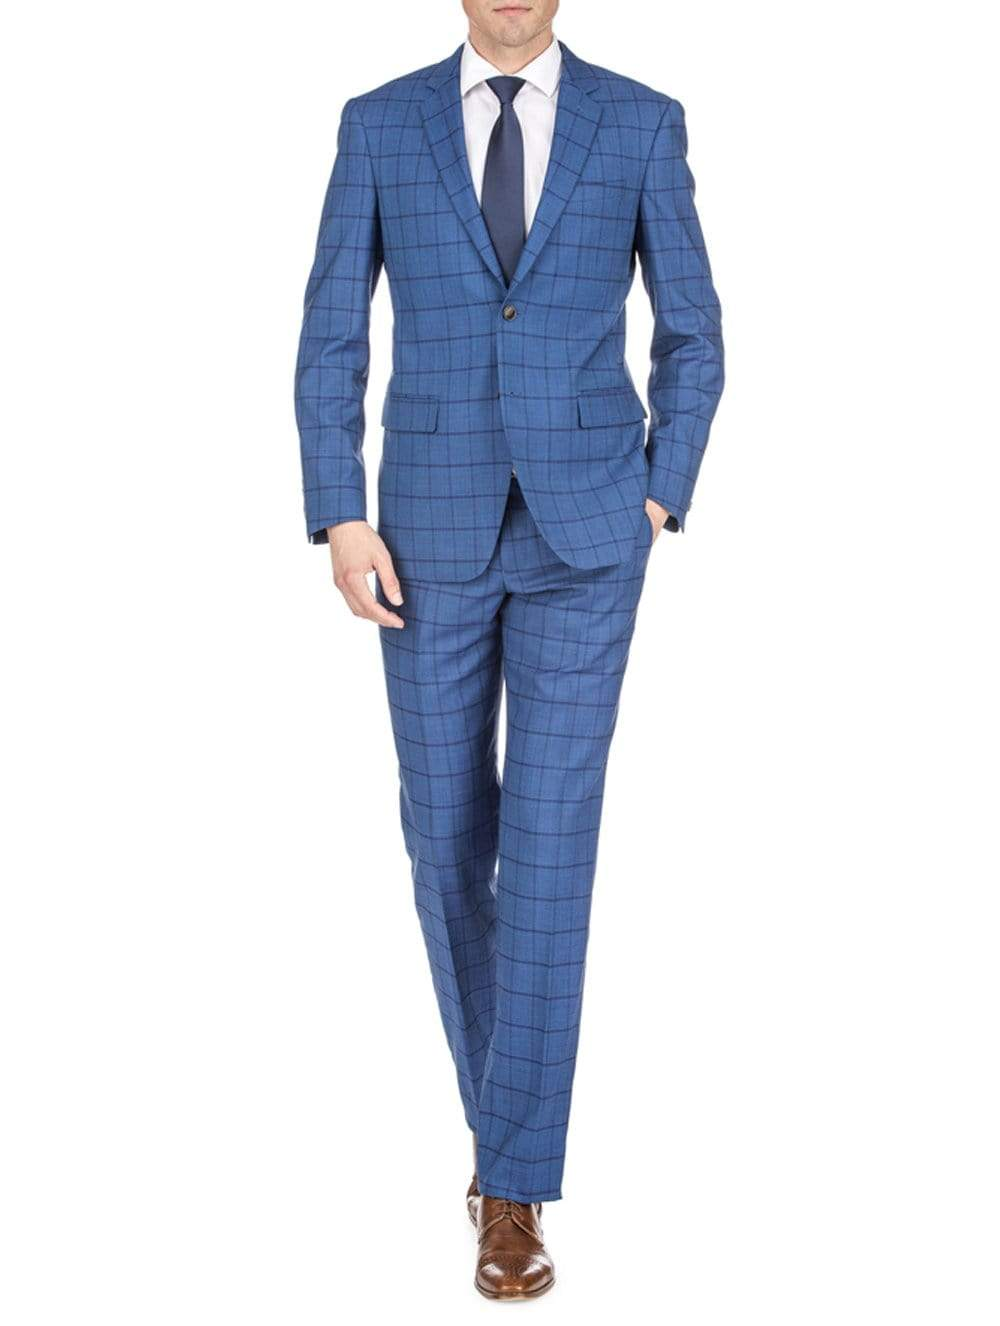 DAILY HAUTE Men's Suits INDIGO / 36Rx30W Gino Vitale Men's Window Pane Slim Fit Suits